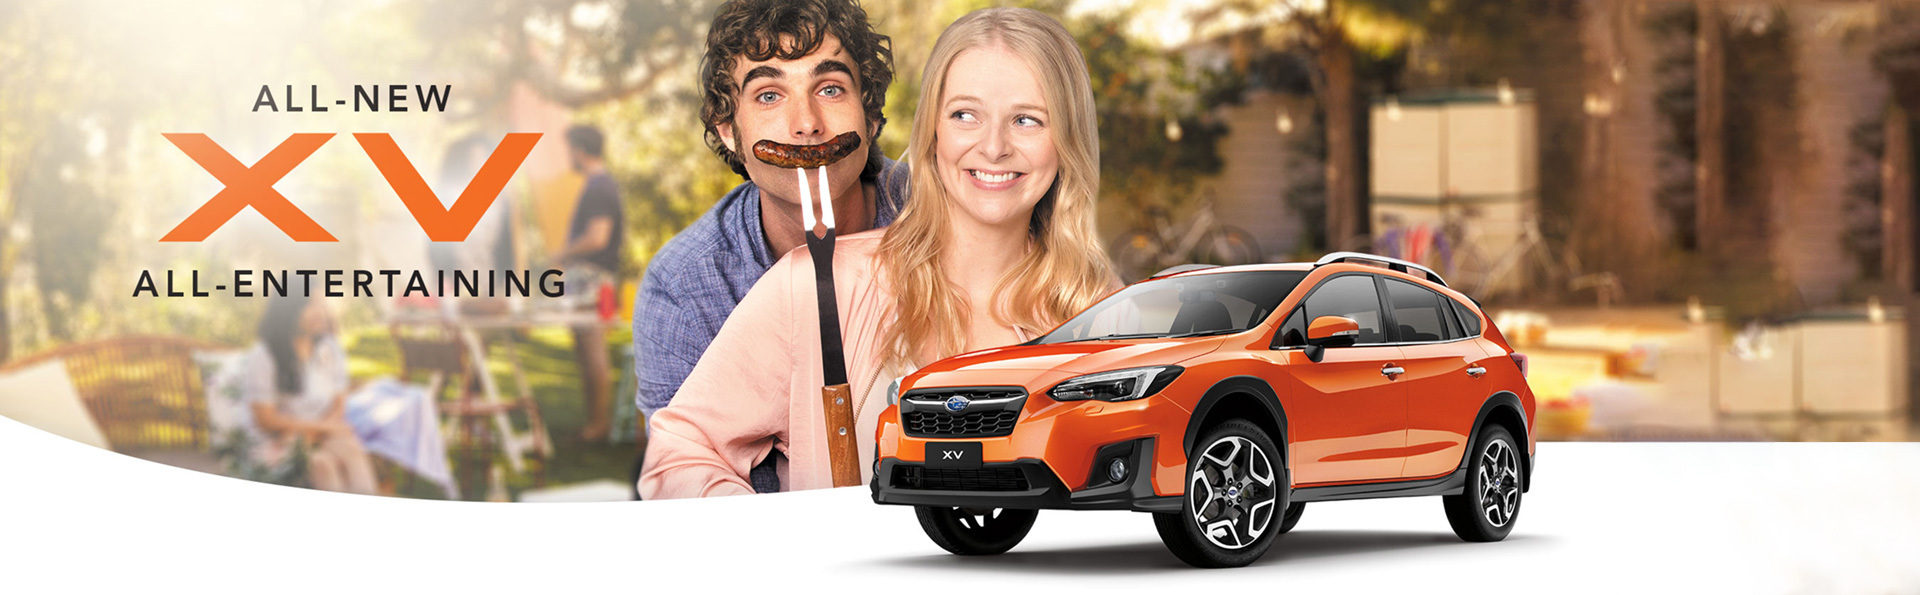 All-New Subaru XV